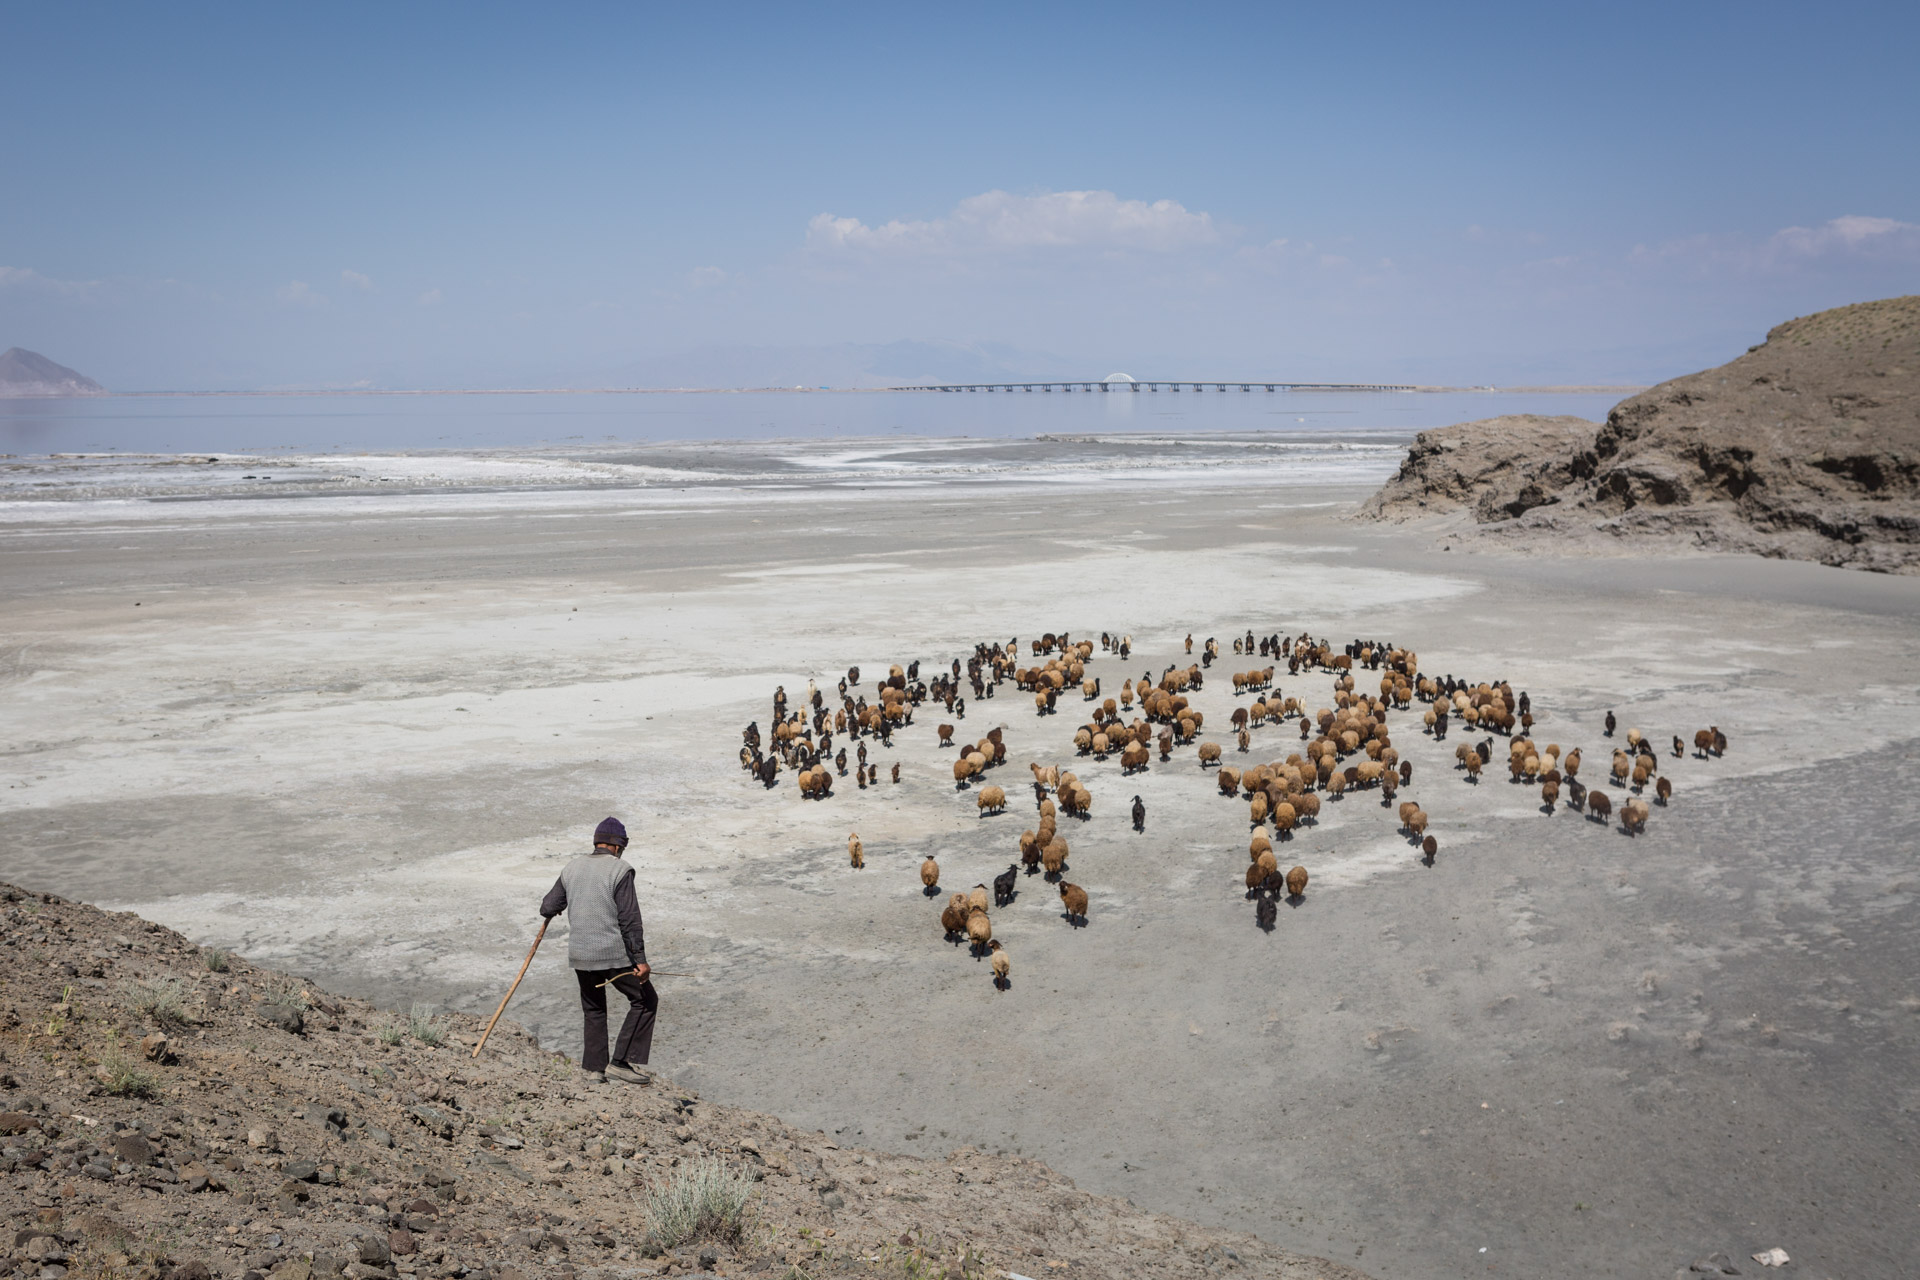 A shepherd wanders around Lake Urmia in search of meadows for his goats. The desertification of the lake makes it harder each year for farmers to find fertile soil.